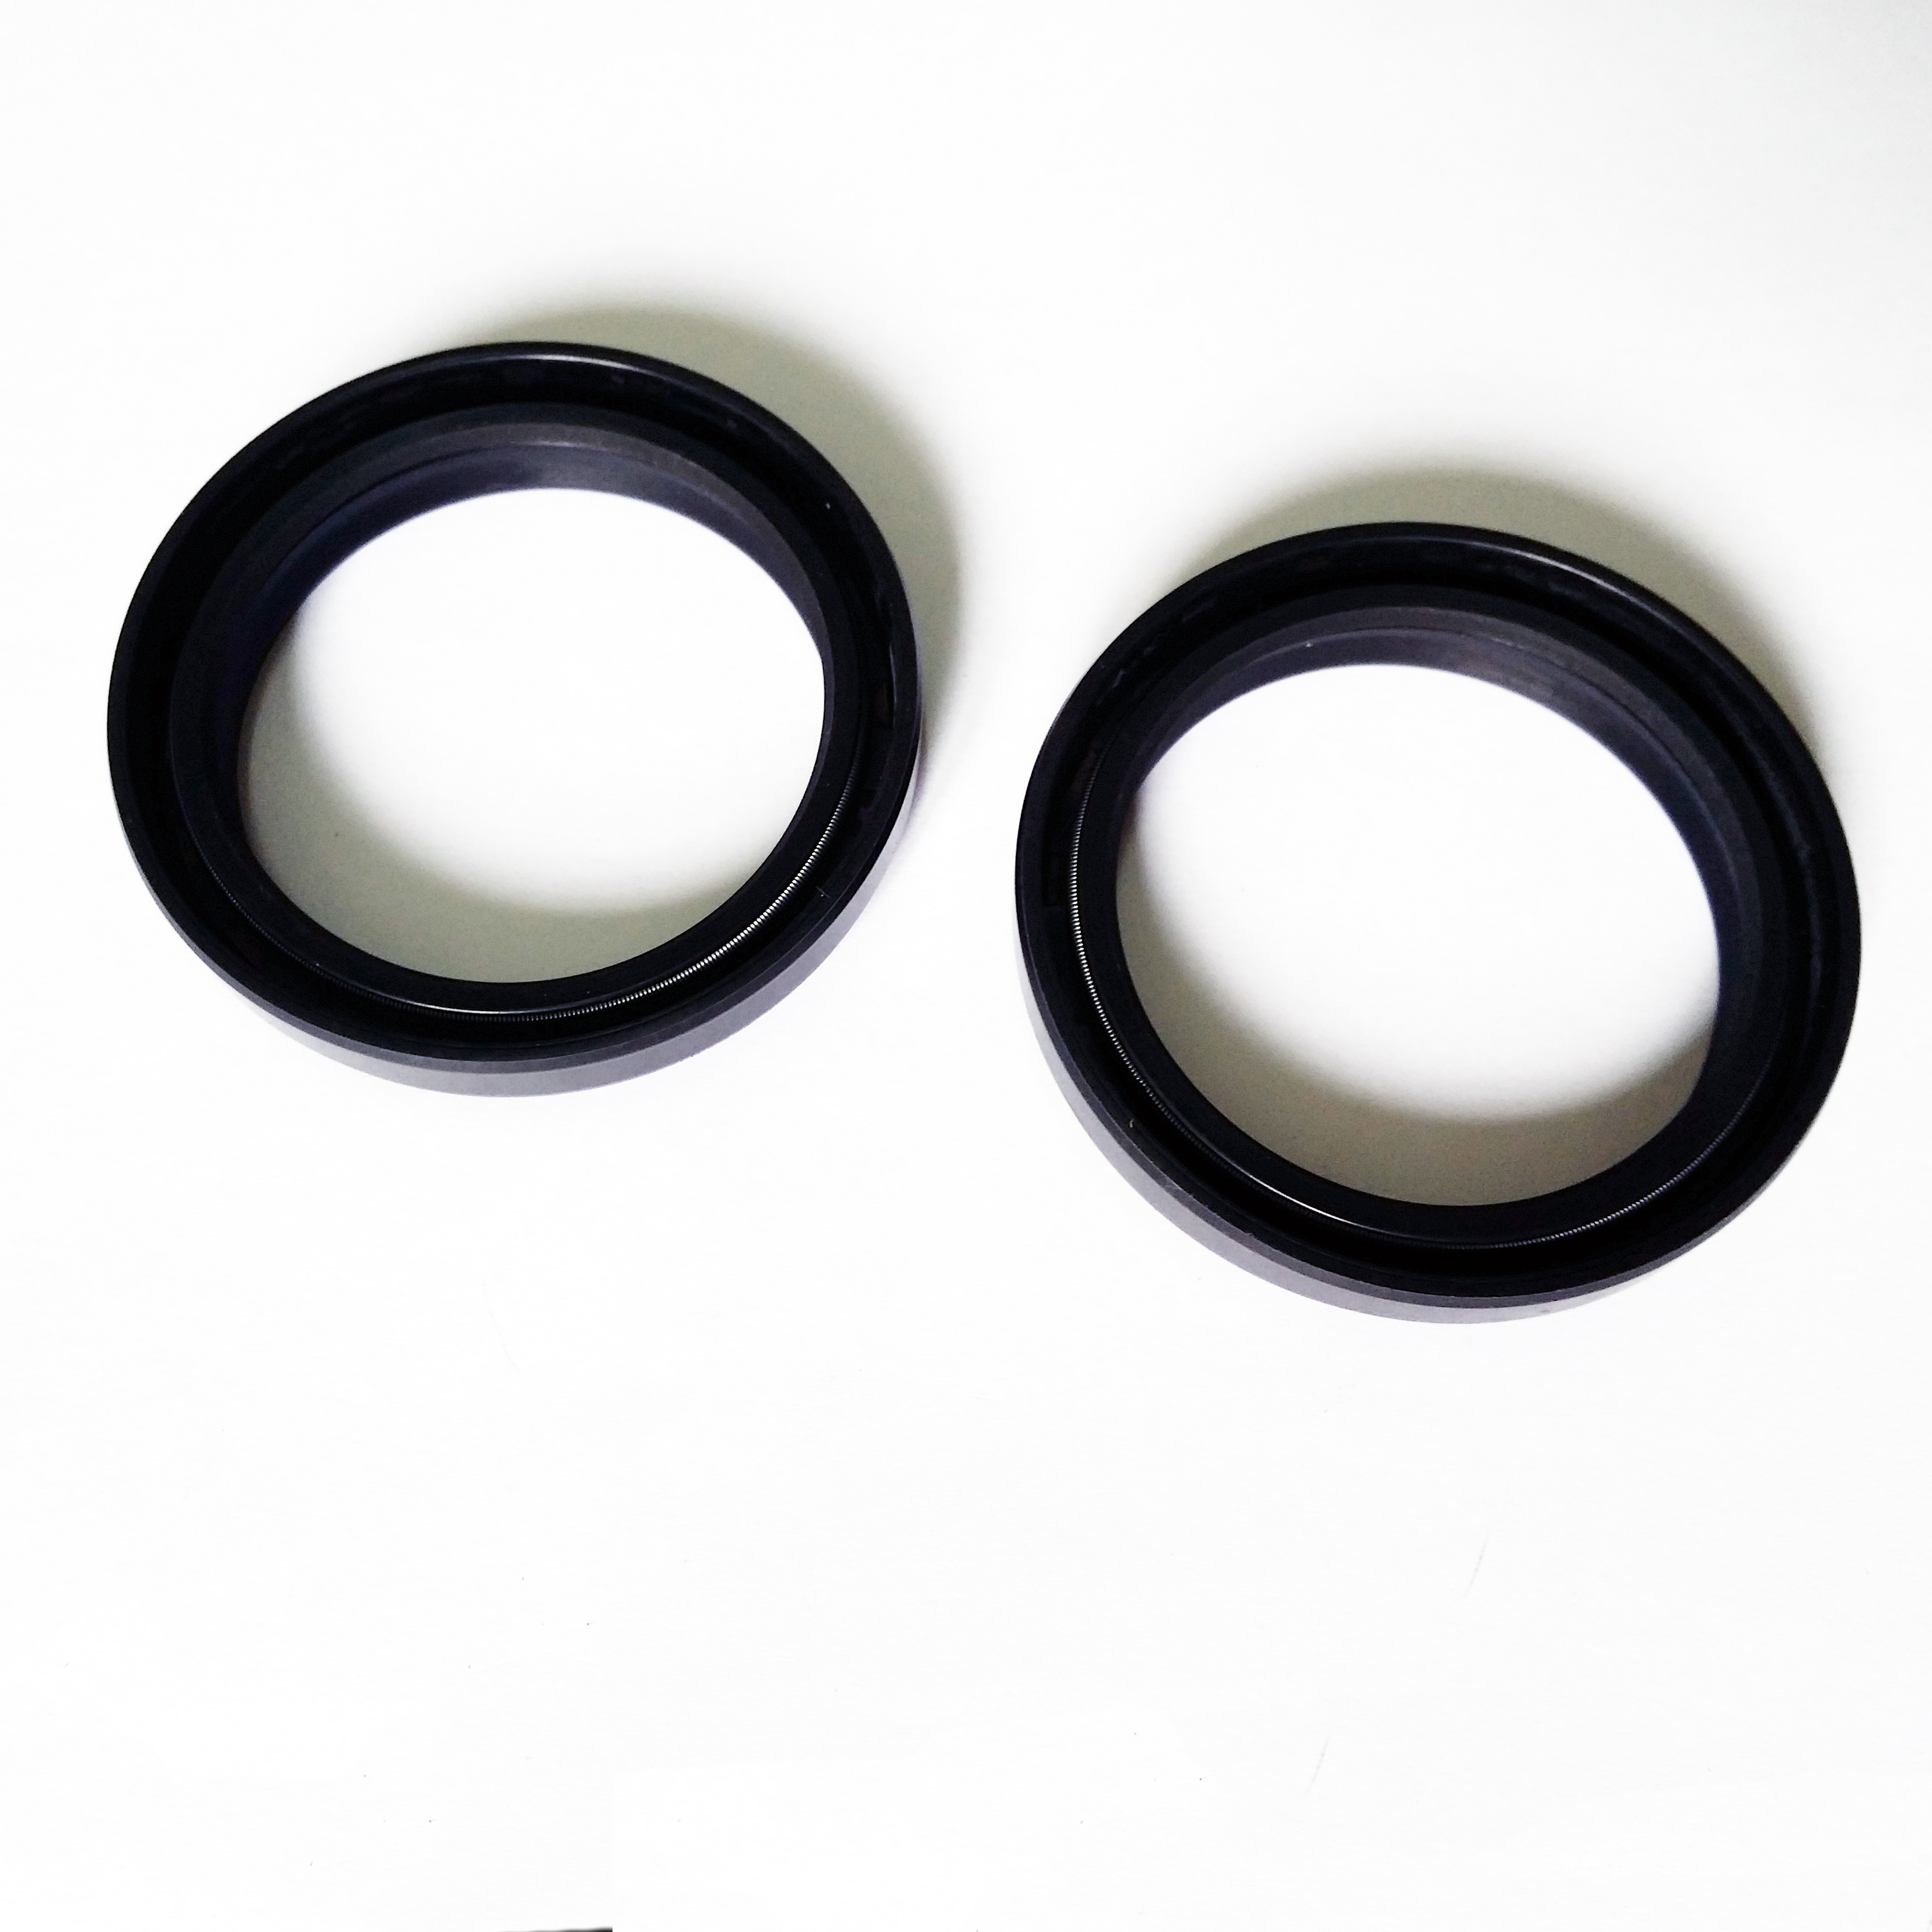 K-Tech Suzuki SFV650 2009-2015 NOK Front Fork Oil Seals 41x54x11mm